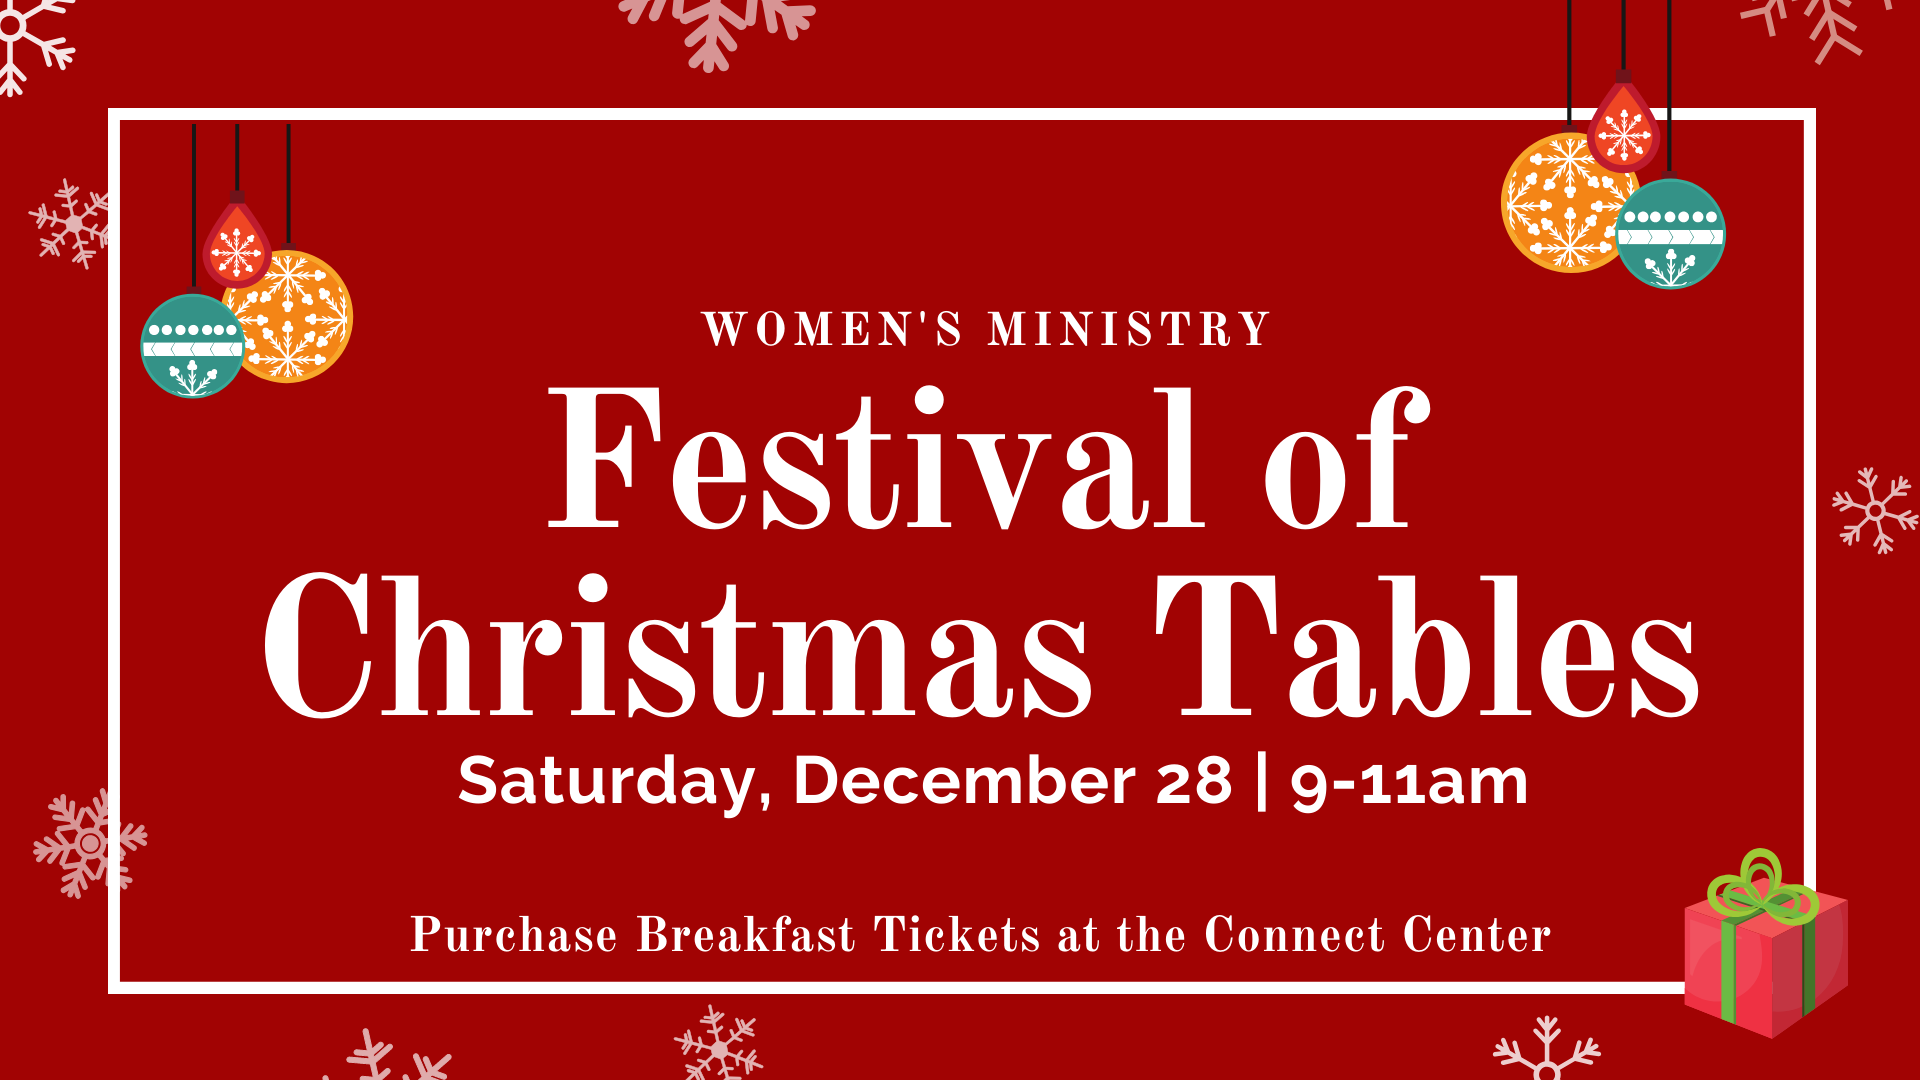 Festival of Christmas Tables